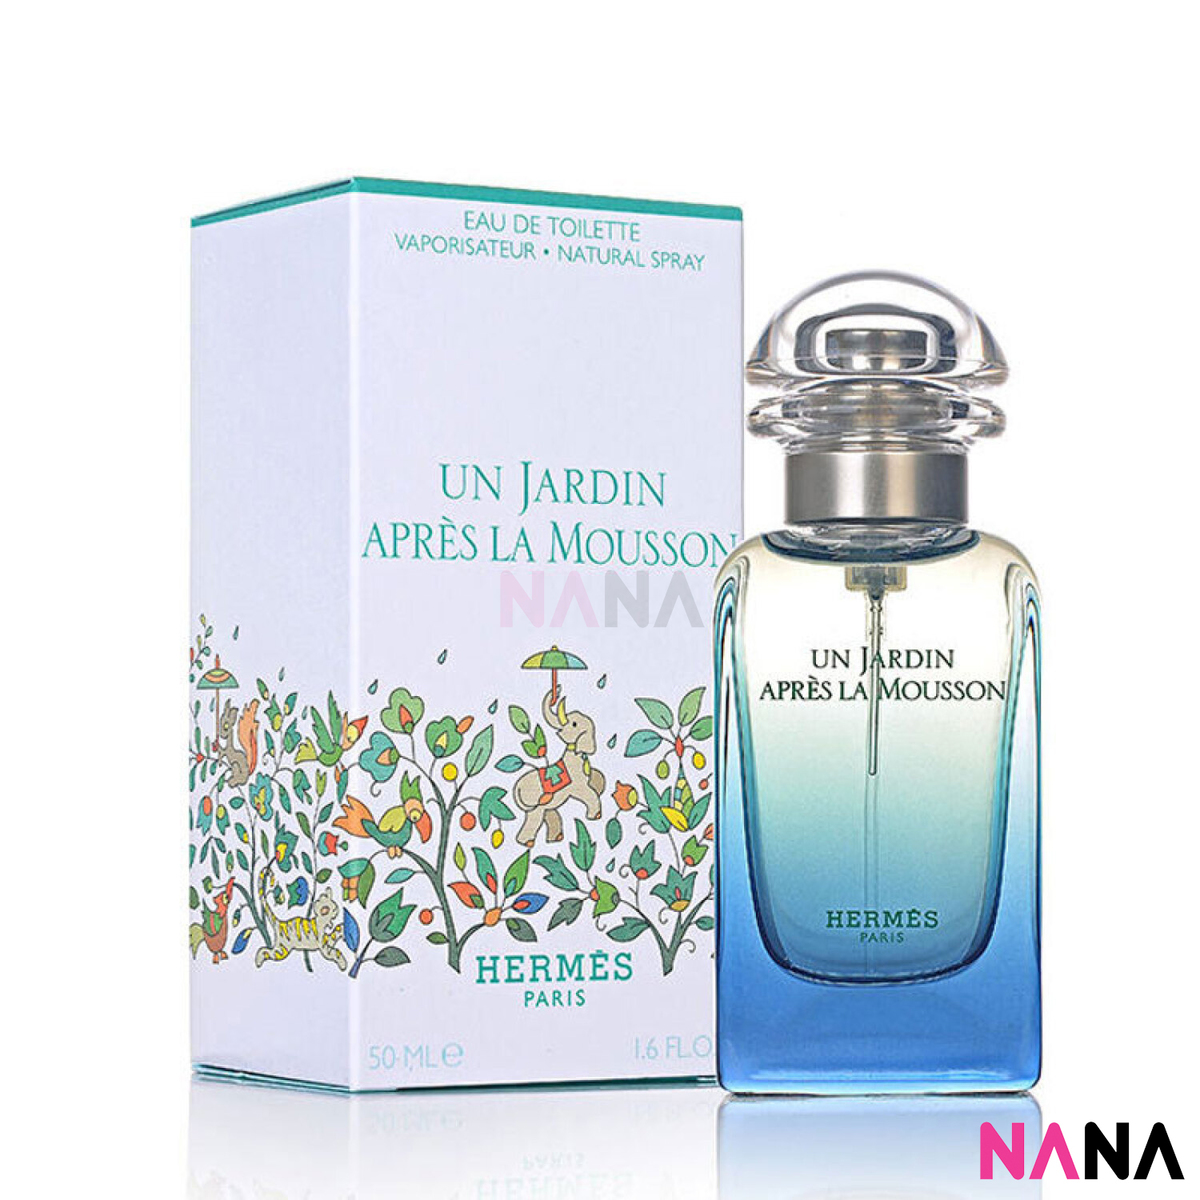 Un Jardin Apres La Mousson Eau De Toilette (EDT) for Women 50ml